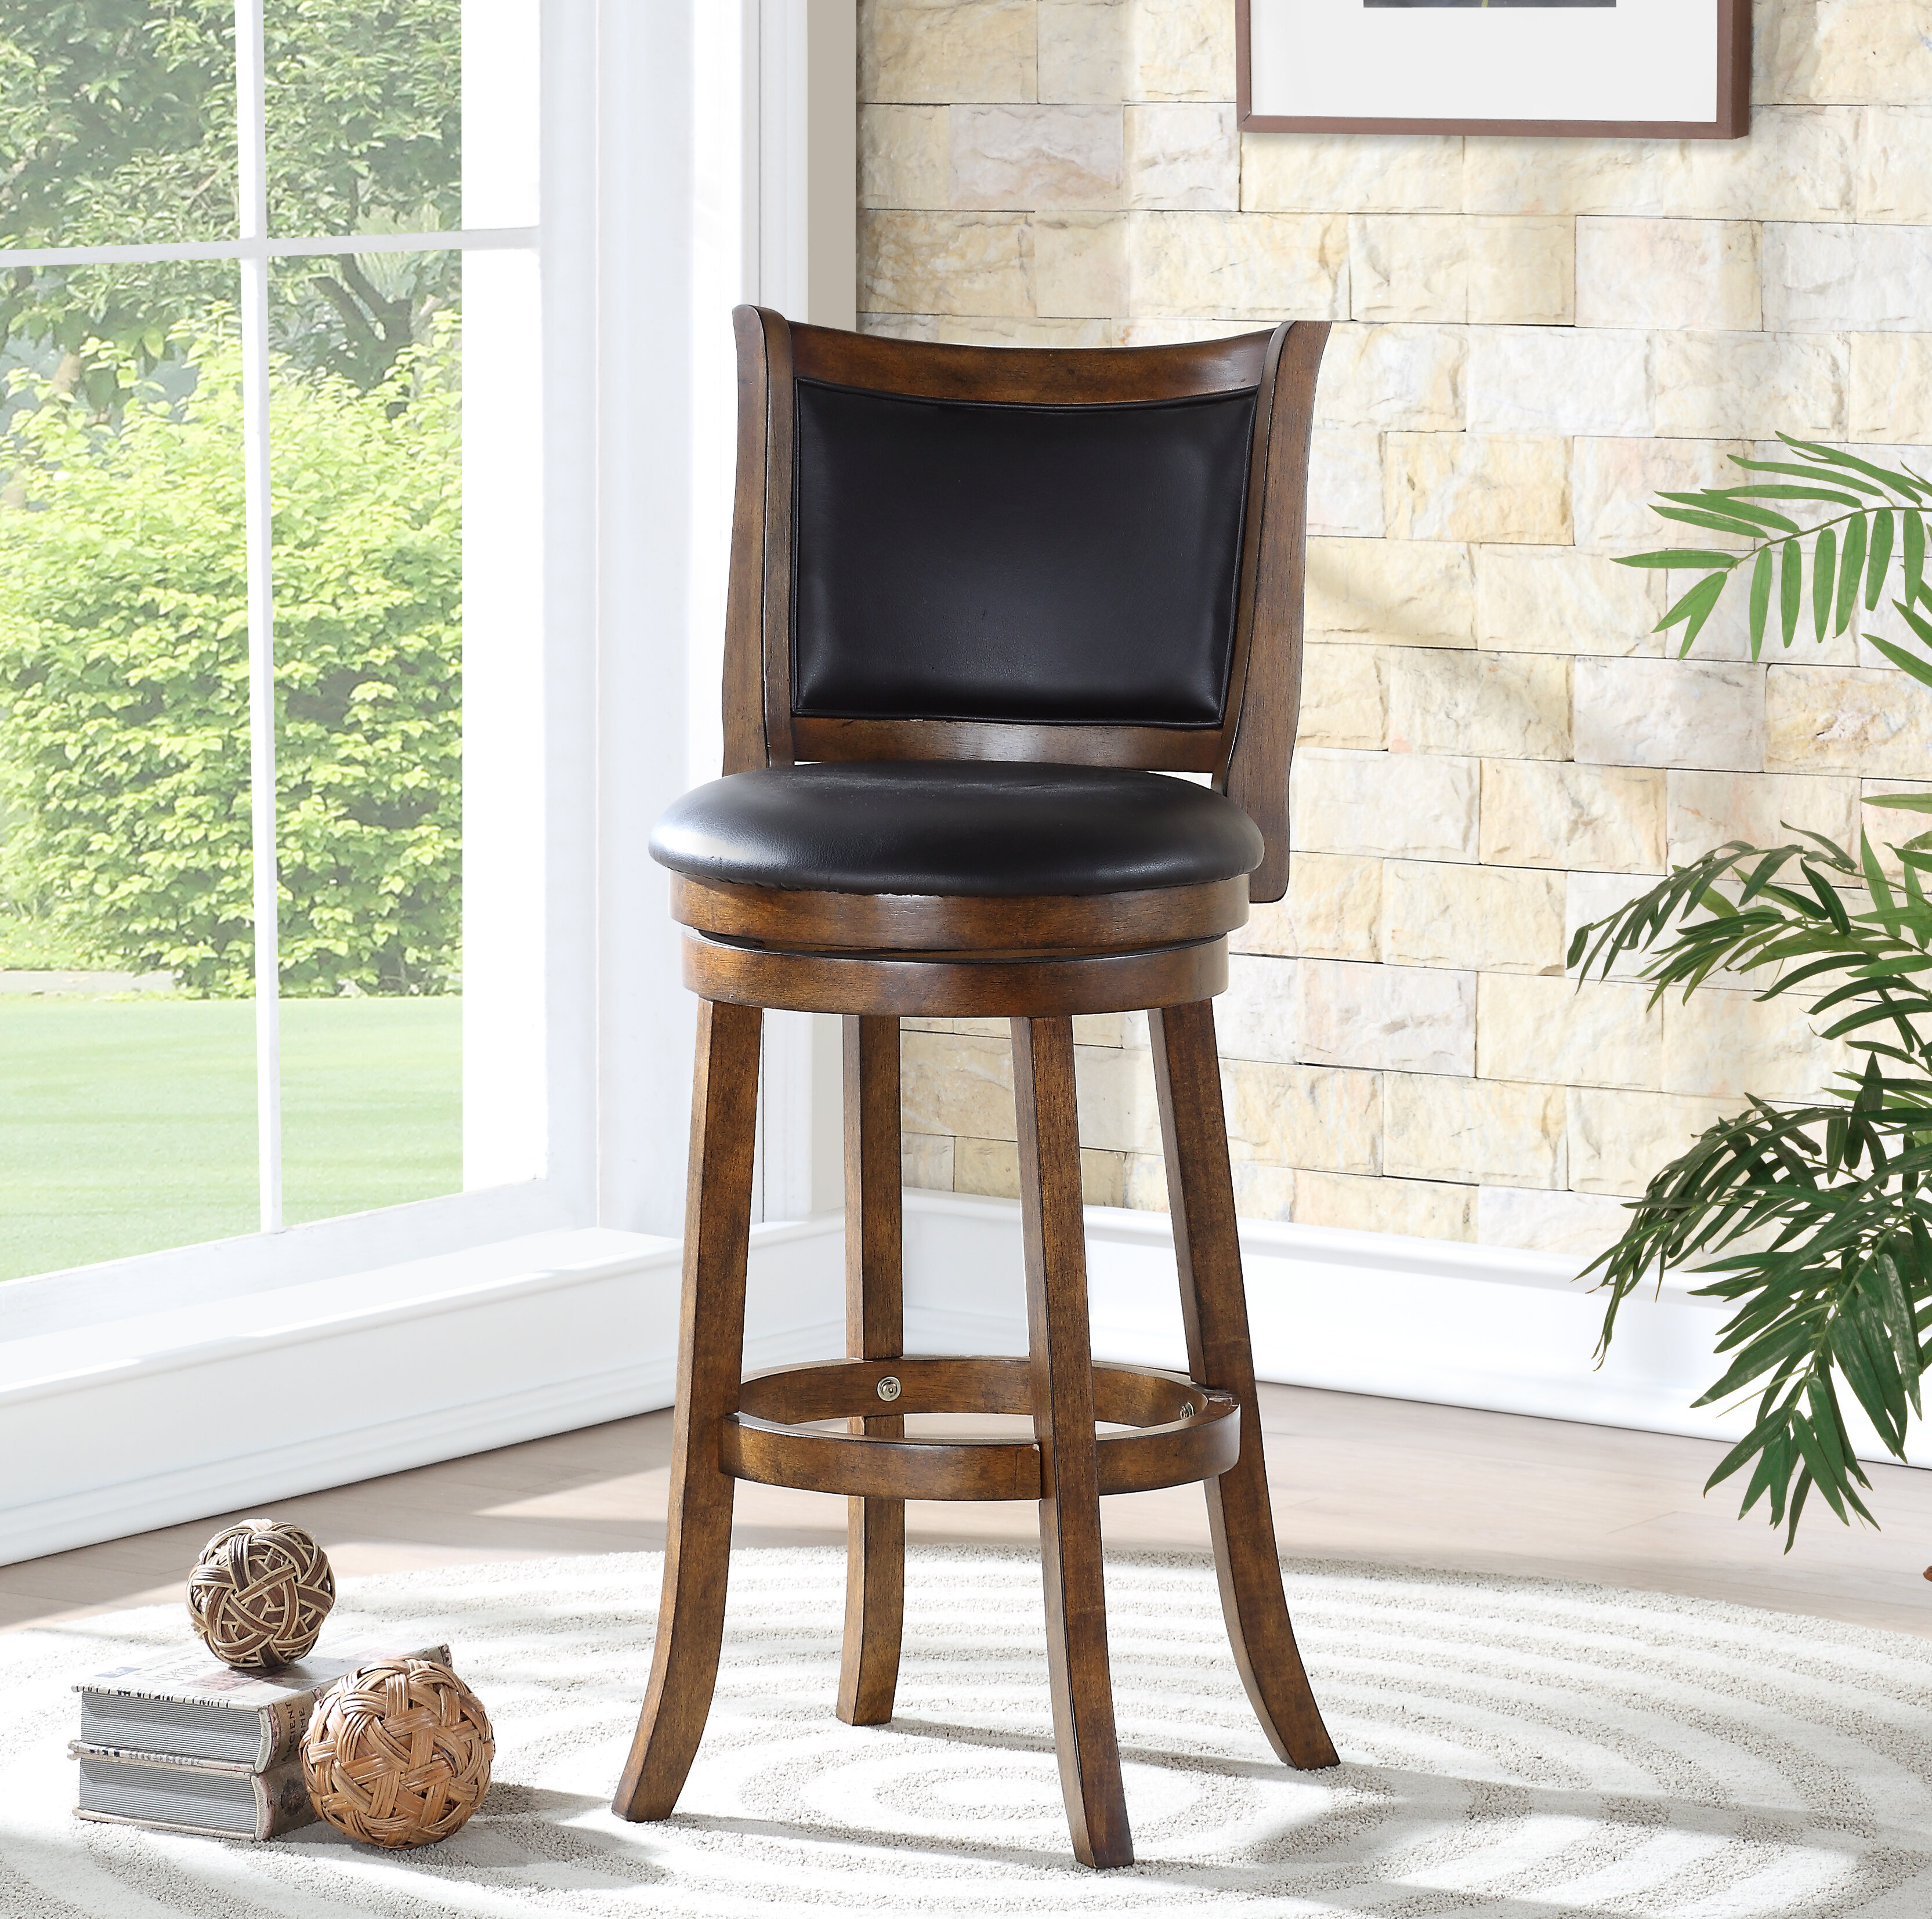 Leather Rustic Bar Stools Counter Stools You Ll Love In 2021 Wayfair